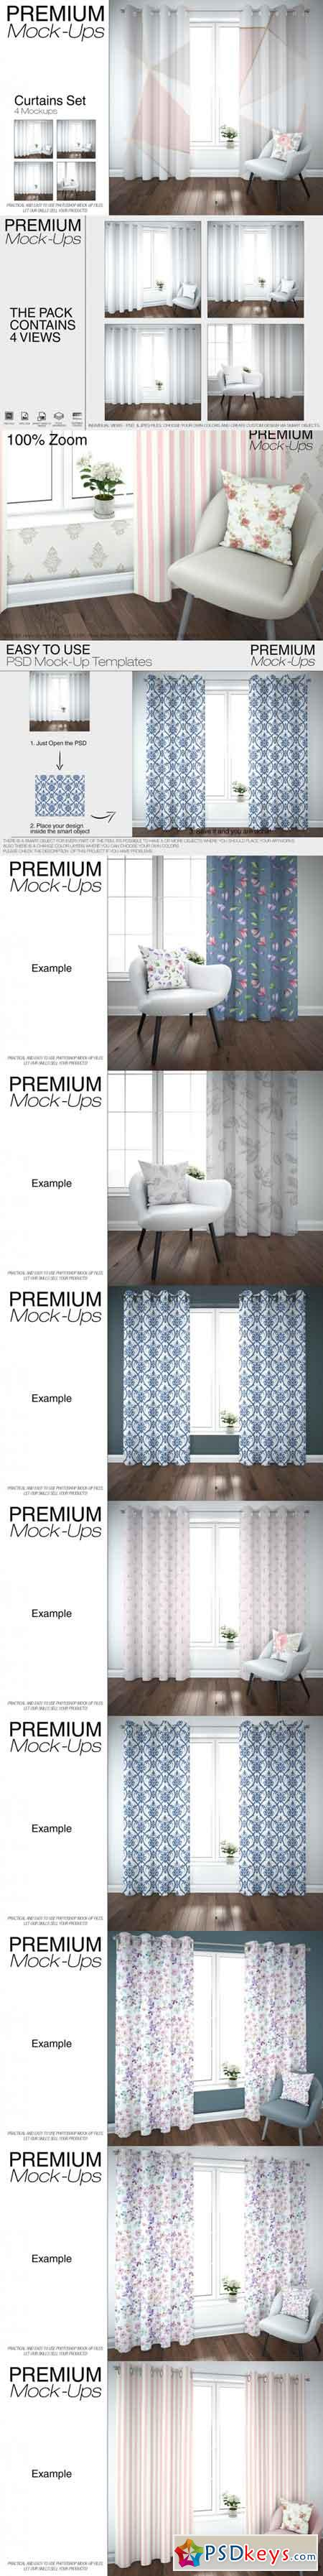 Curtains & Pillow Mockup Pack 3467768